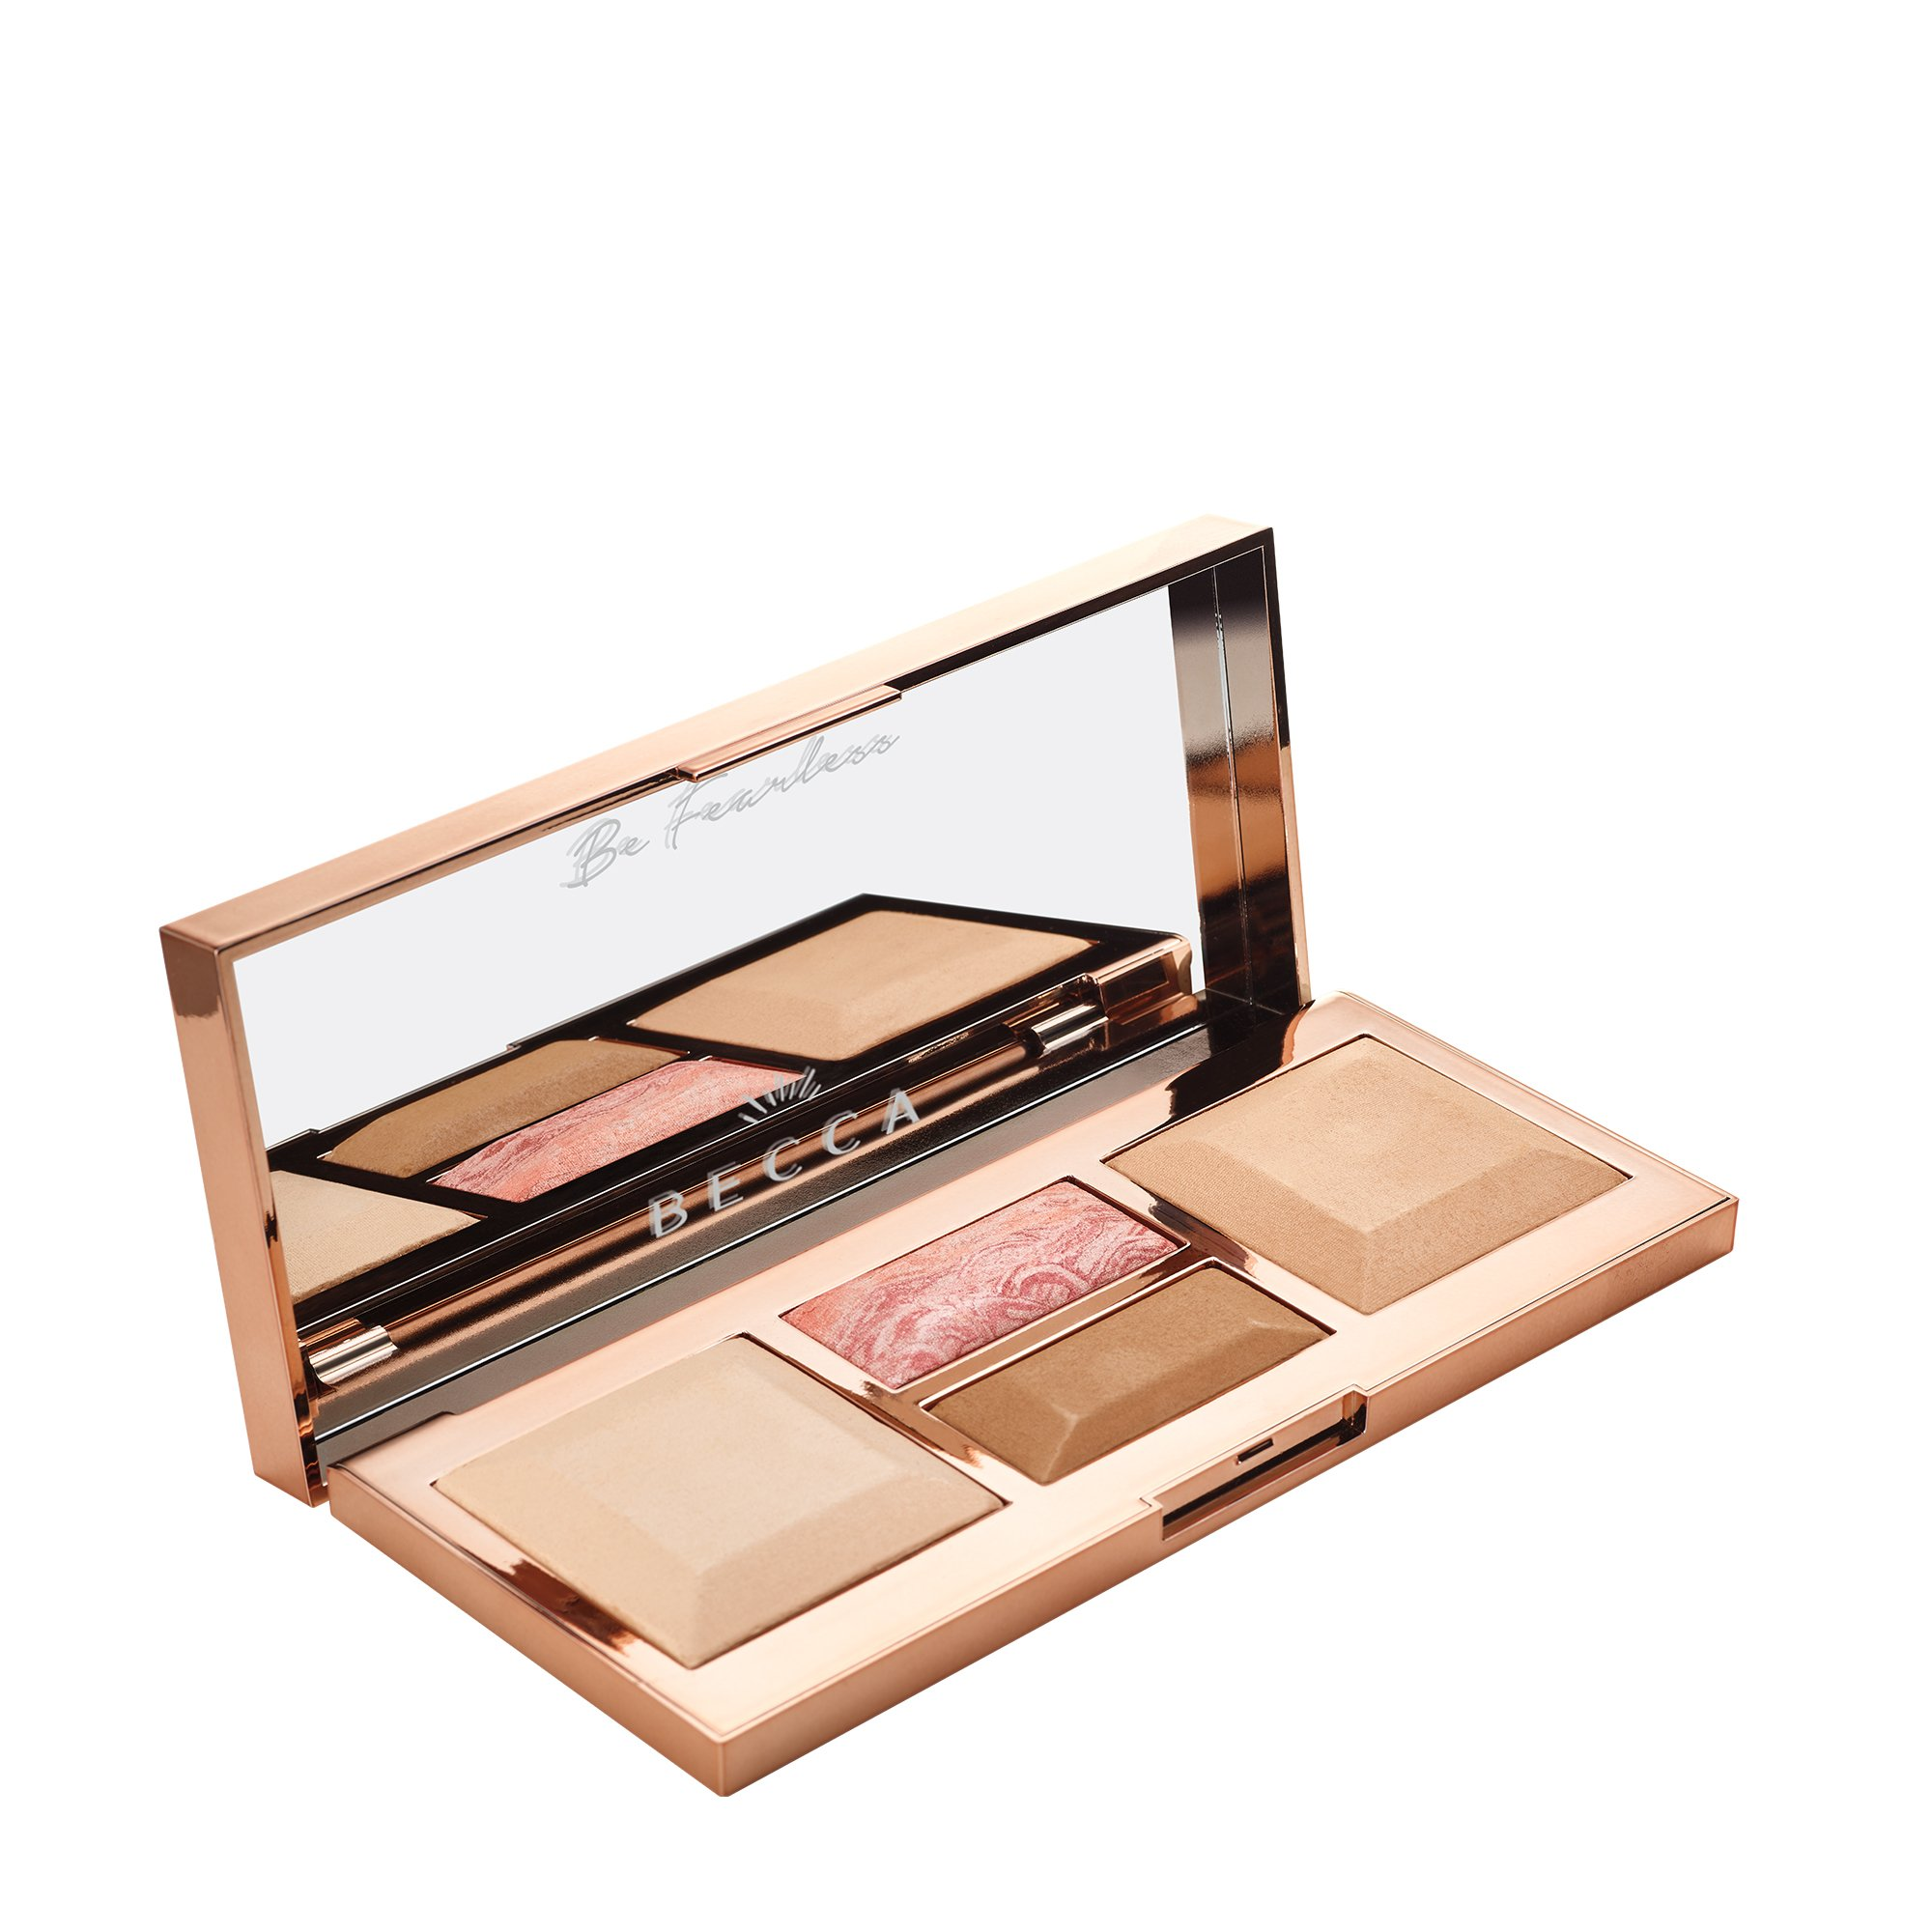 BECCA Cosmetics Be A Light Palette Limited-Edition - Light to Medium